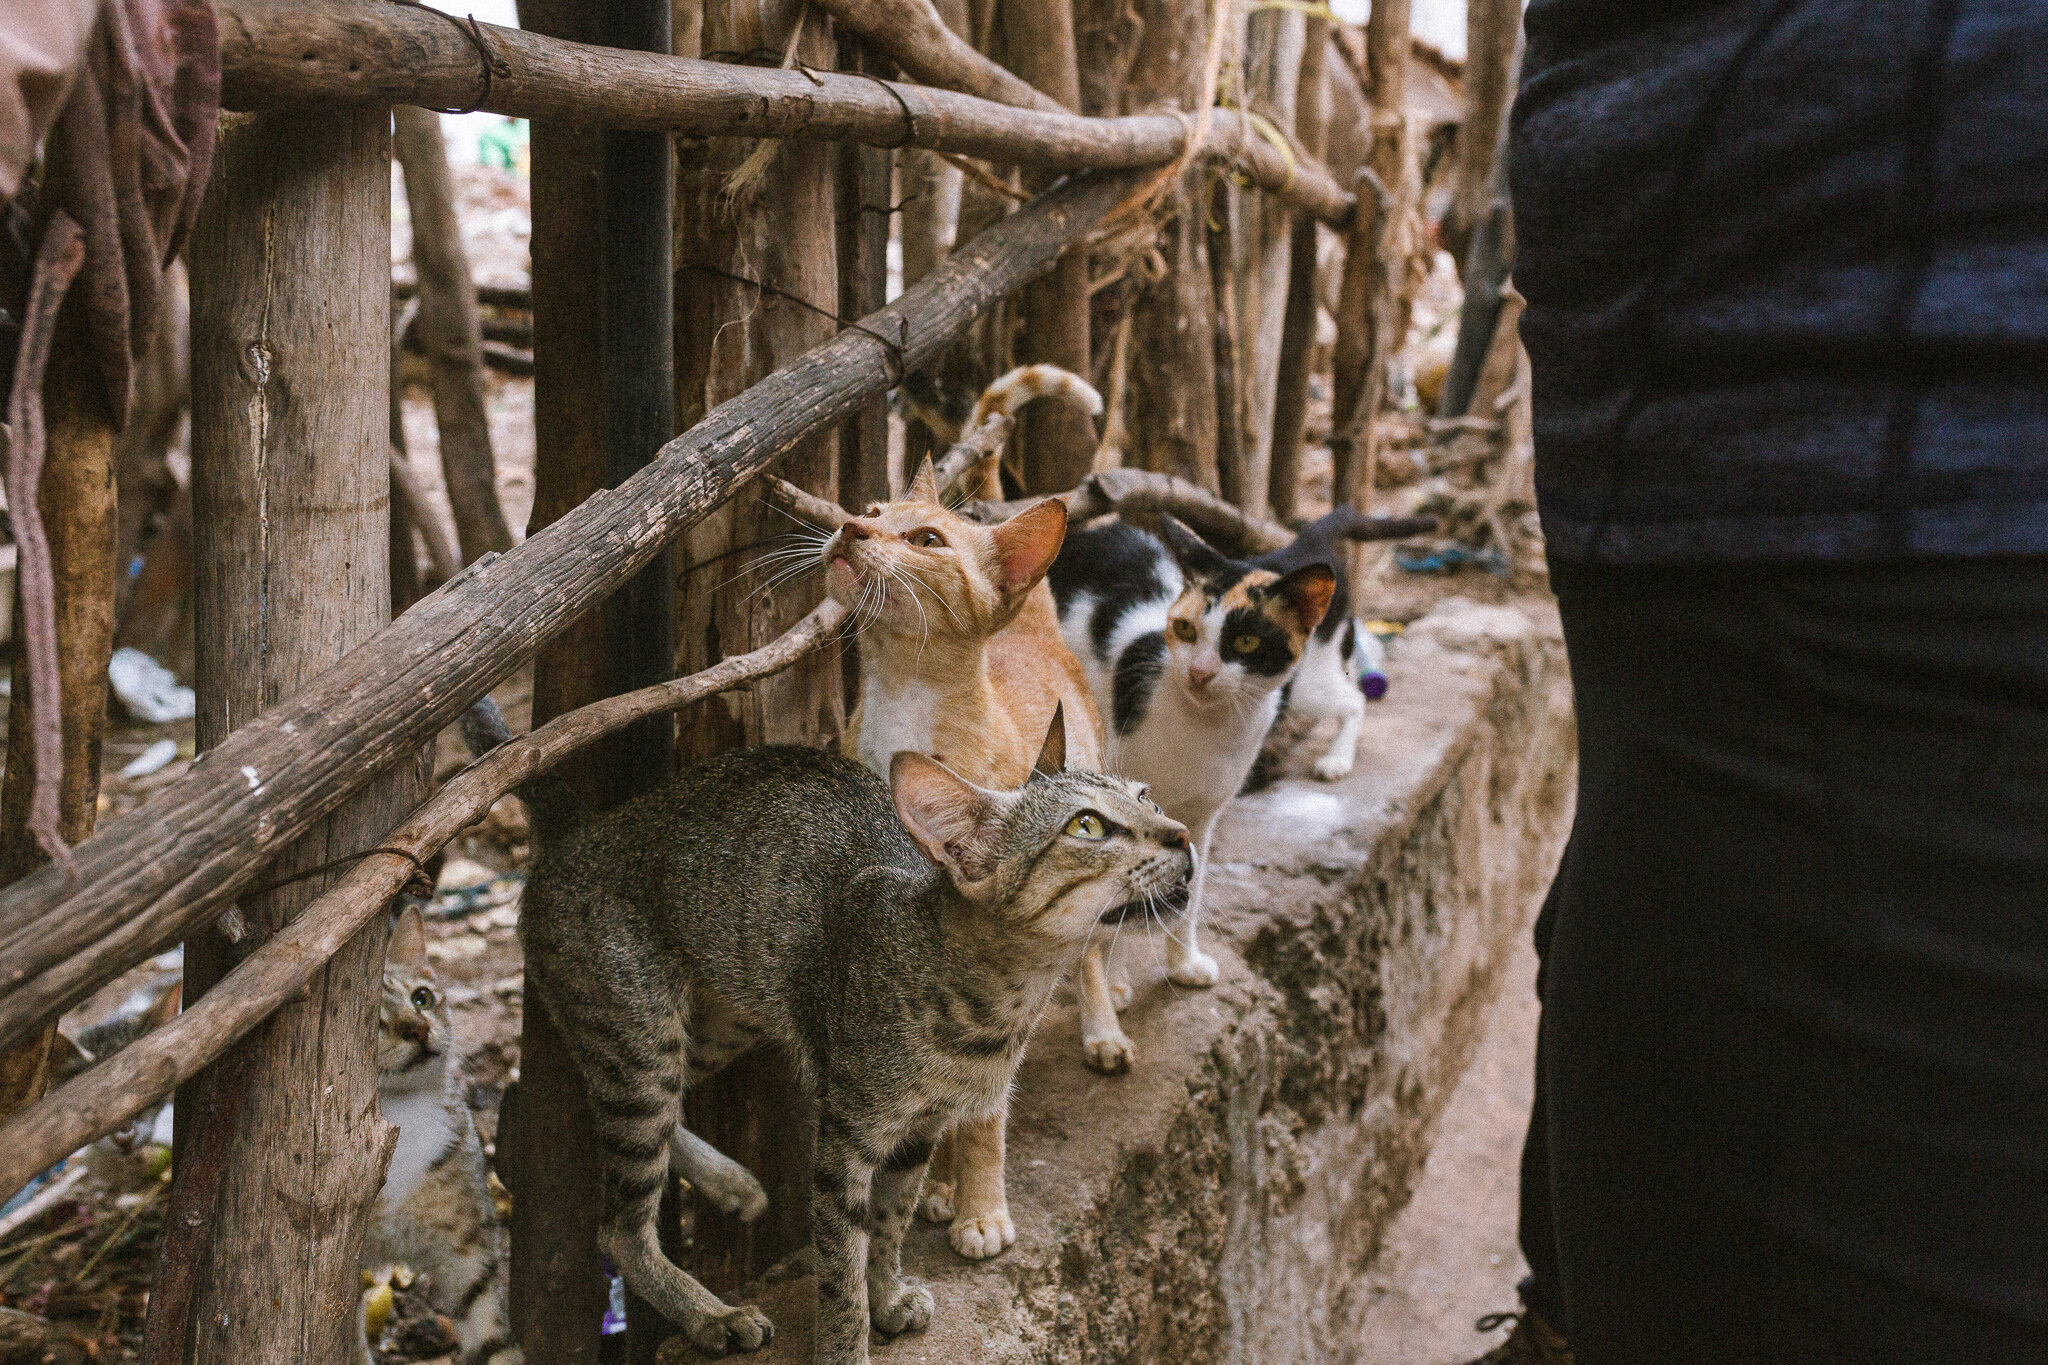 lamu_kenya_ashlee_oneil_photo_cats.jpg